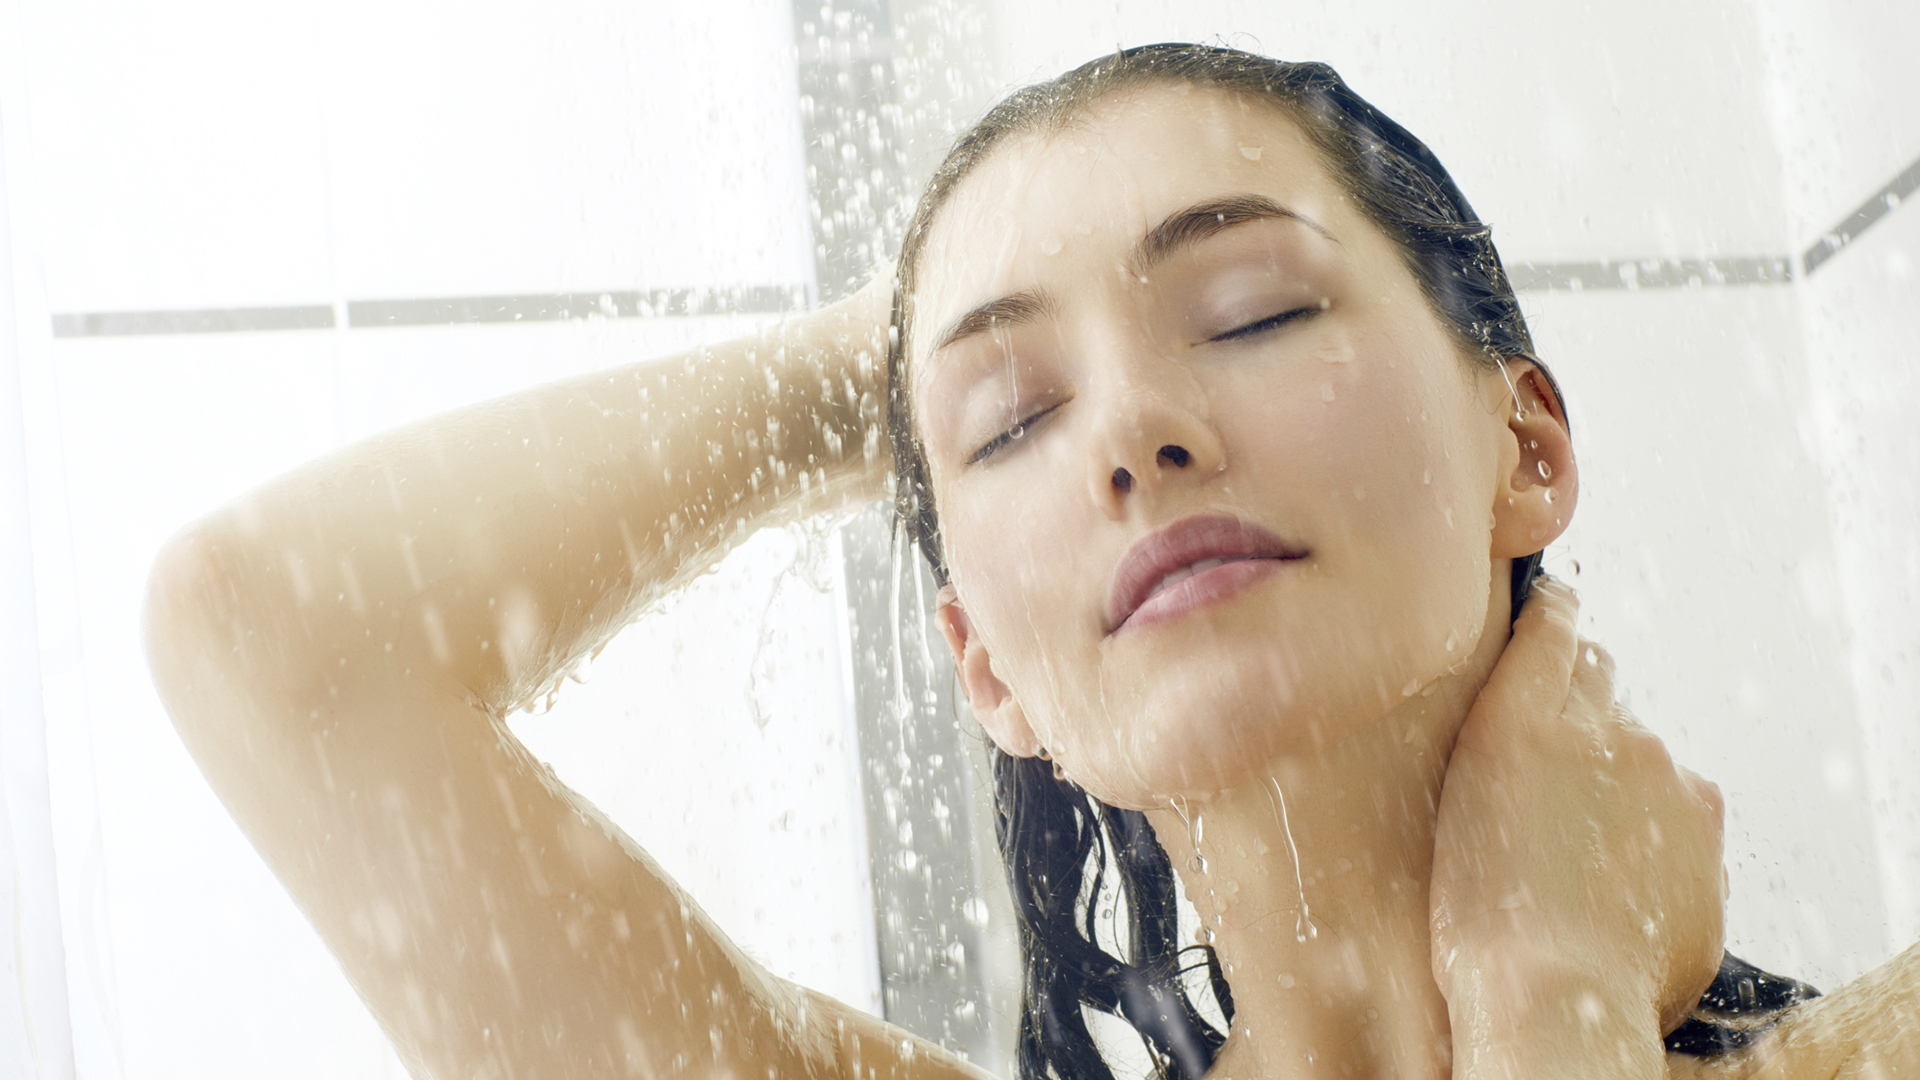 Woman taking shower | Sheknows.com